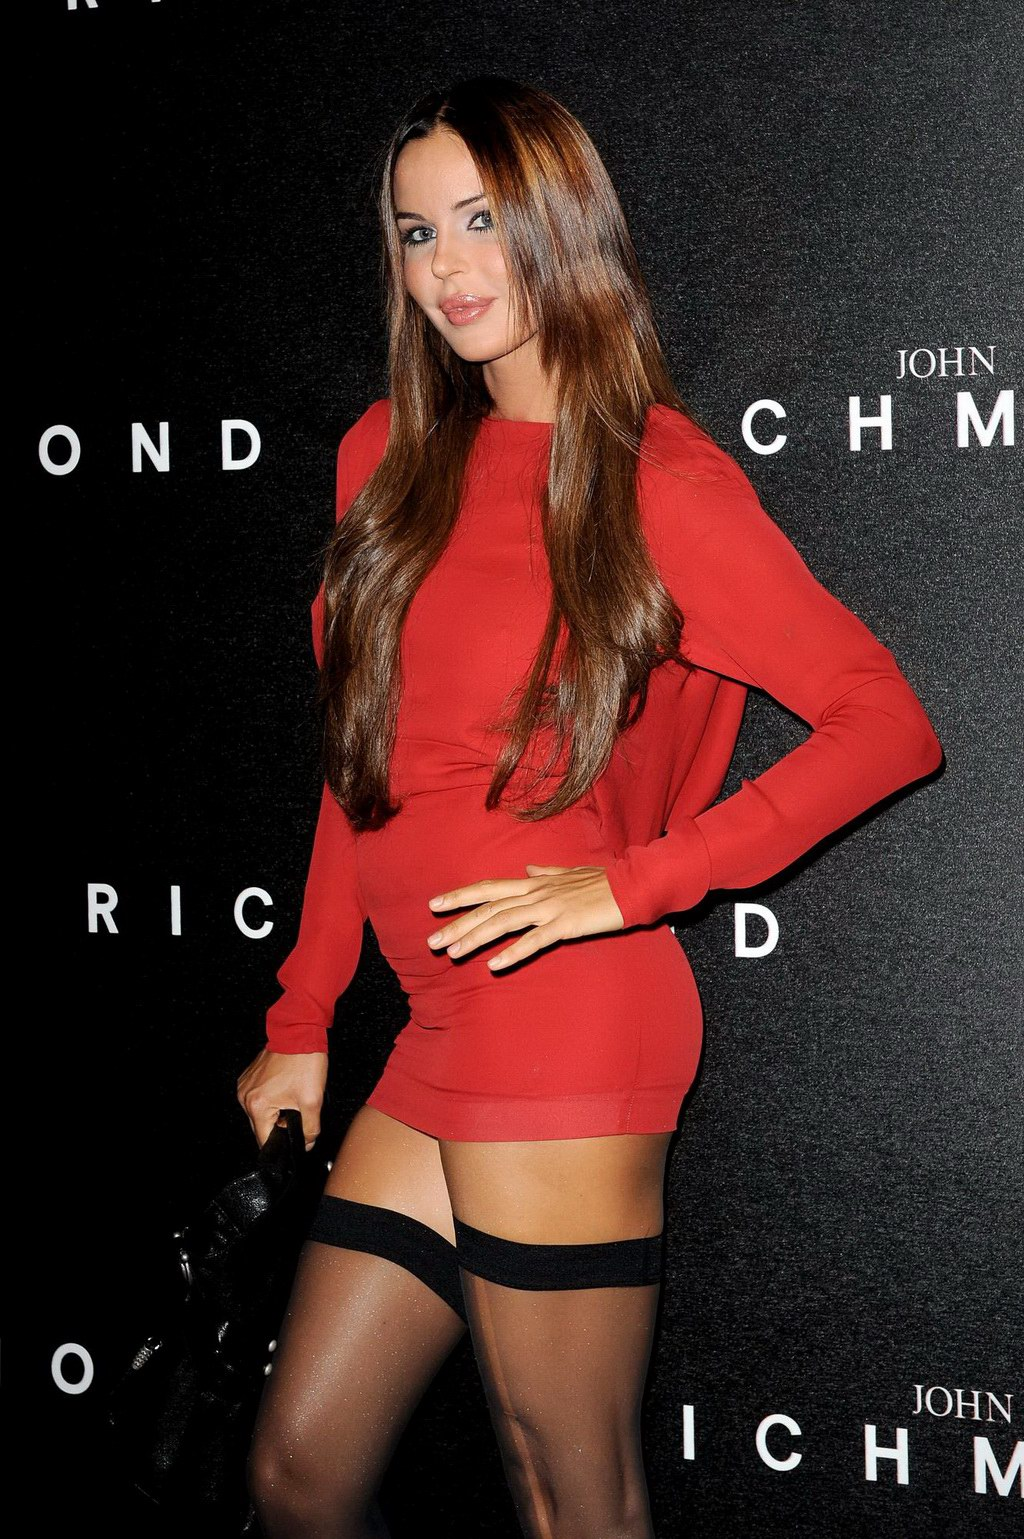 nina moric flashing her pussy at the john richmond milano fashion week